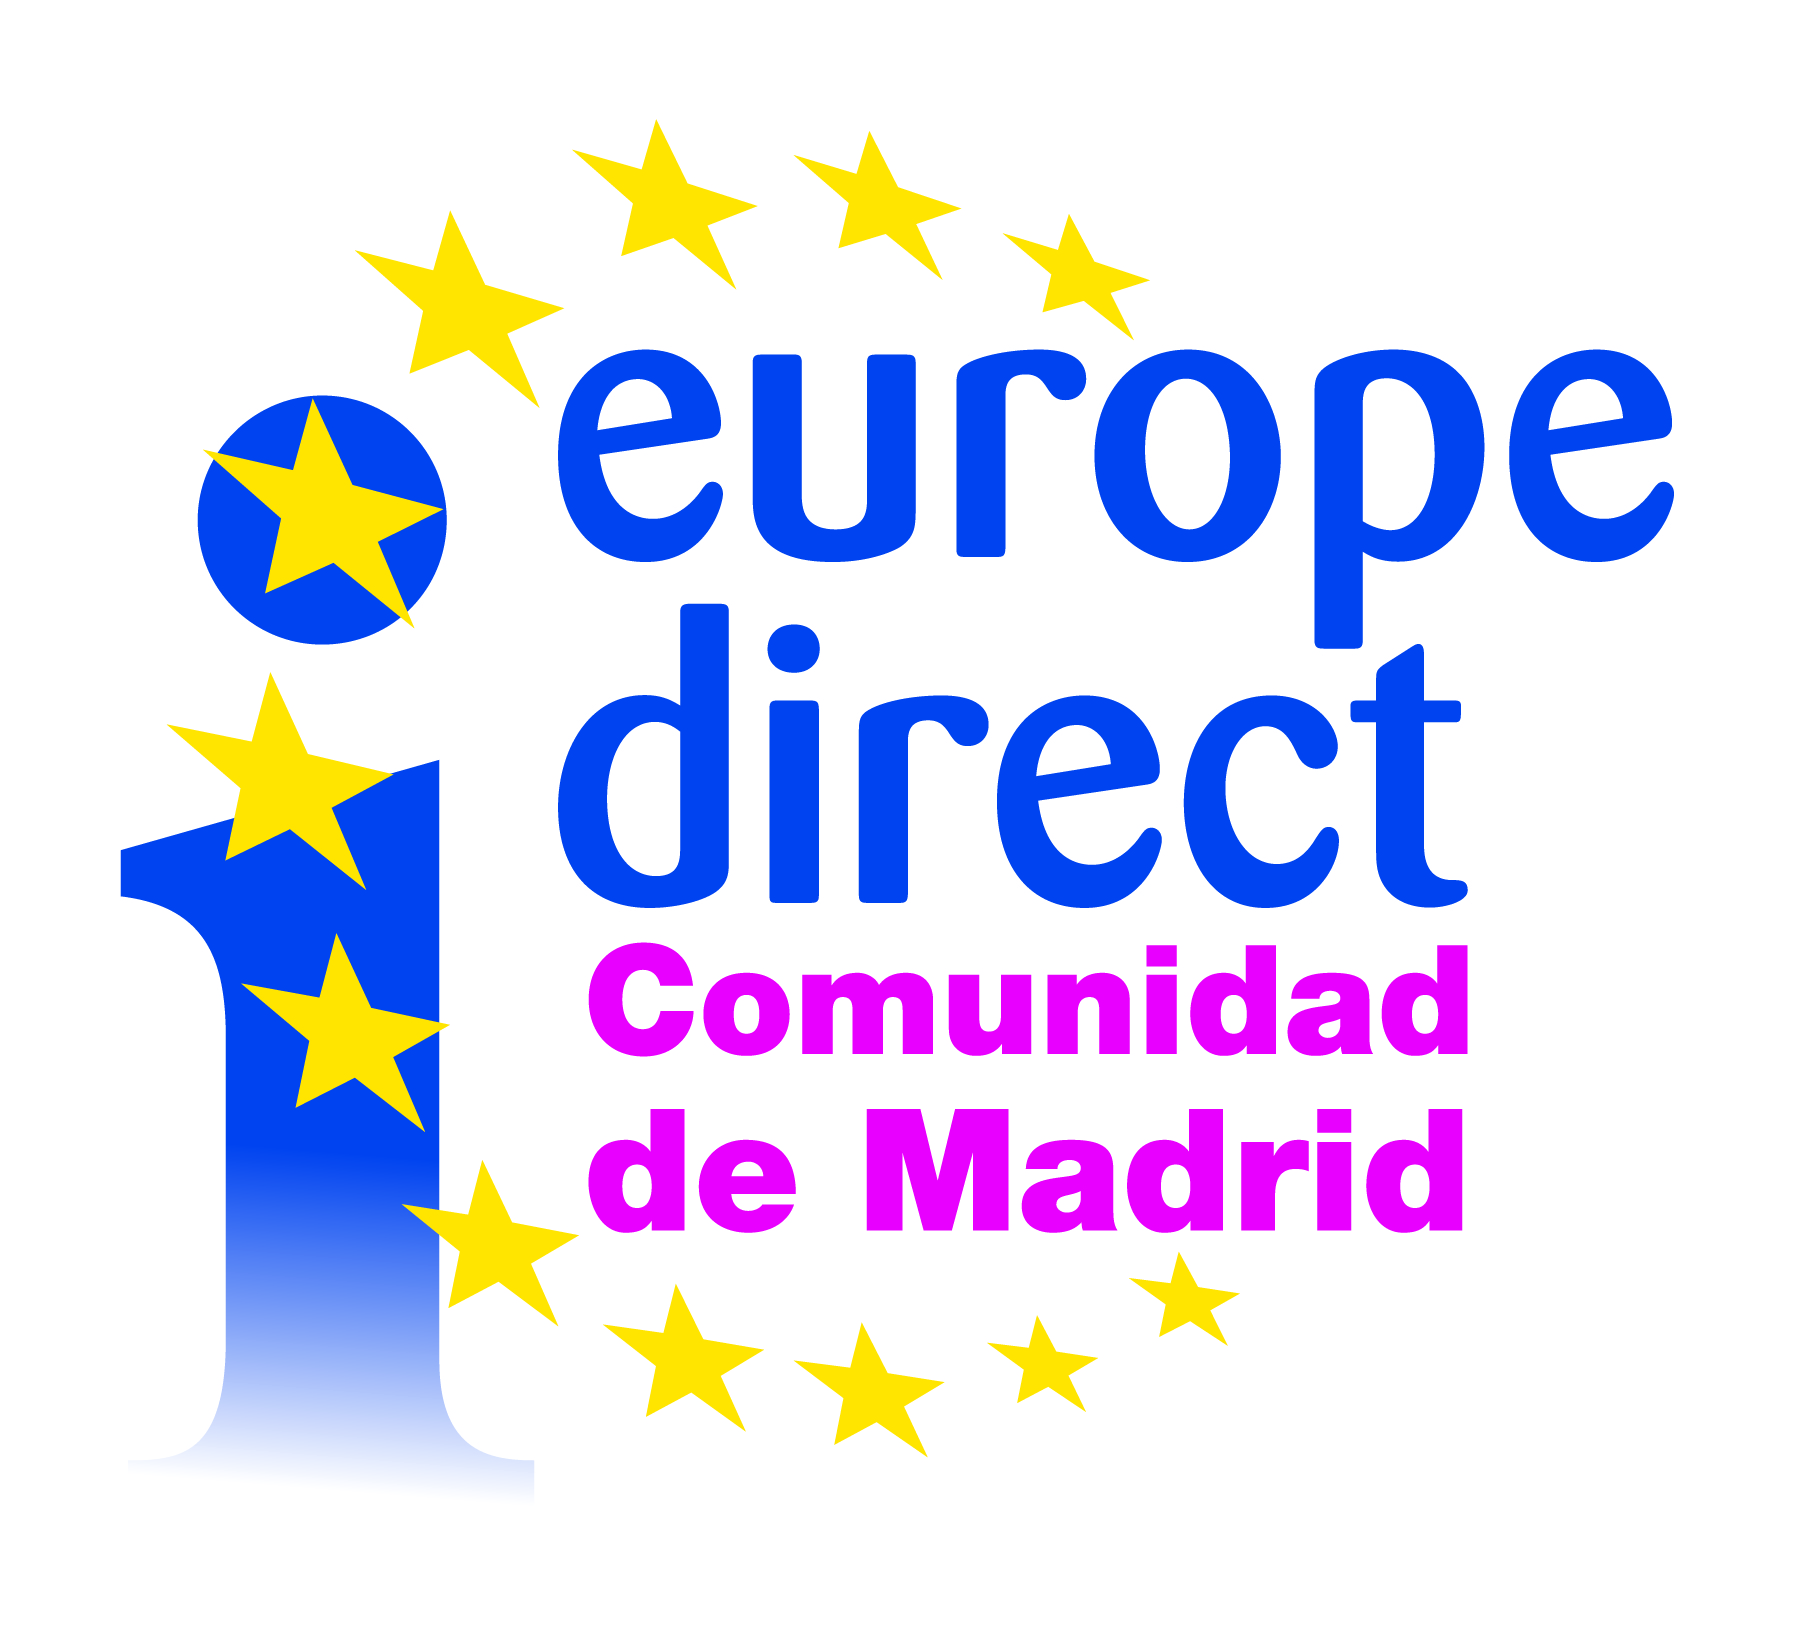 Logotipo del Europe Direct Comunidad de Madrid